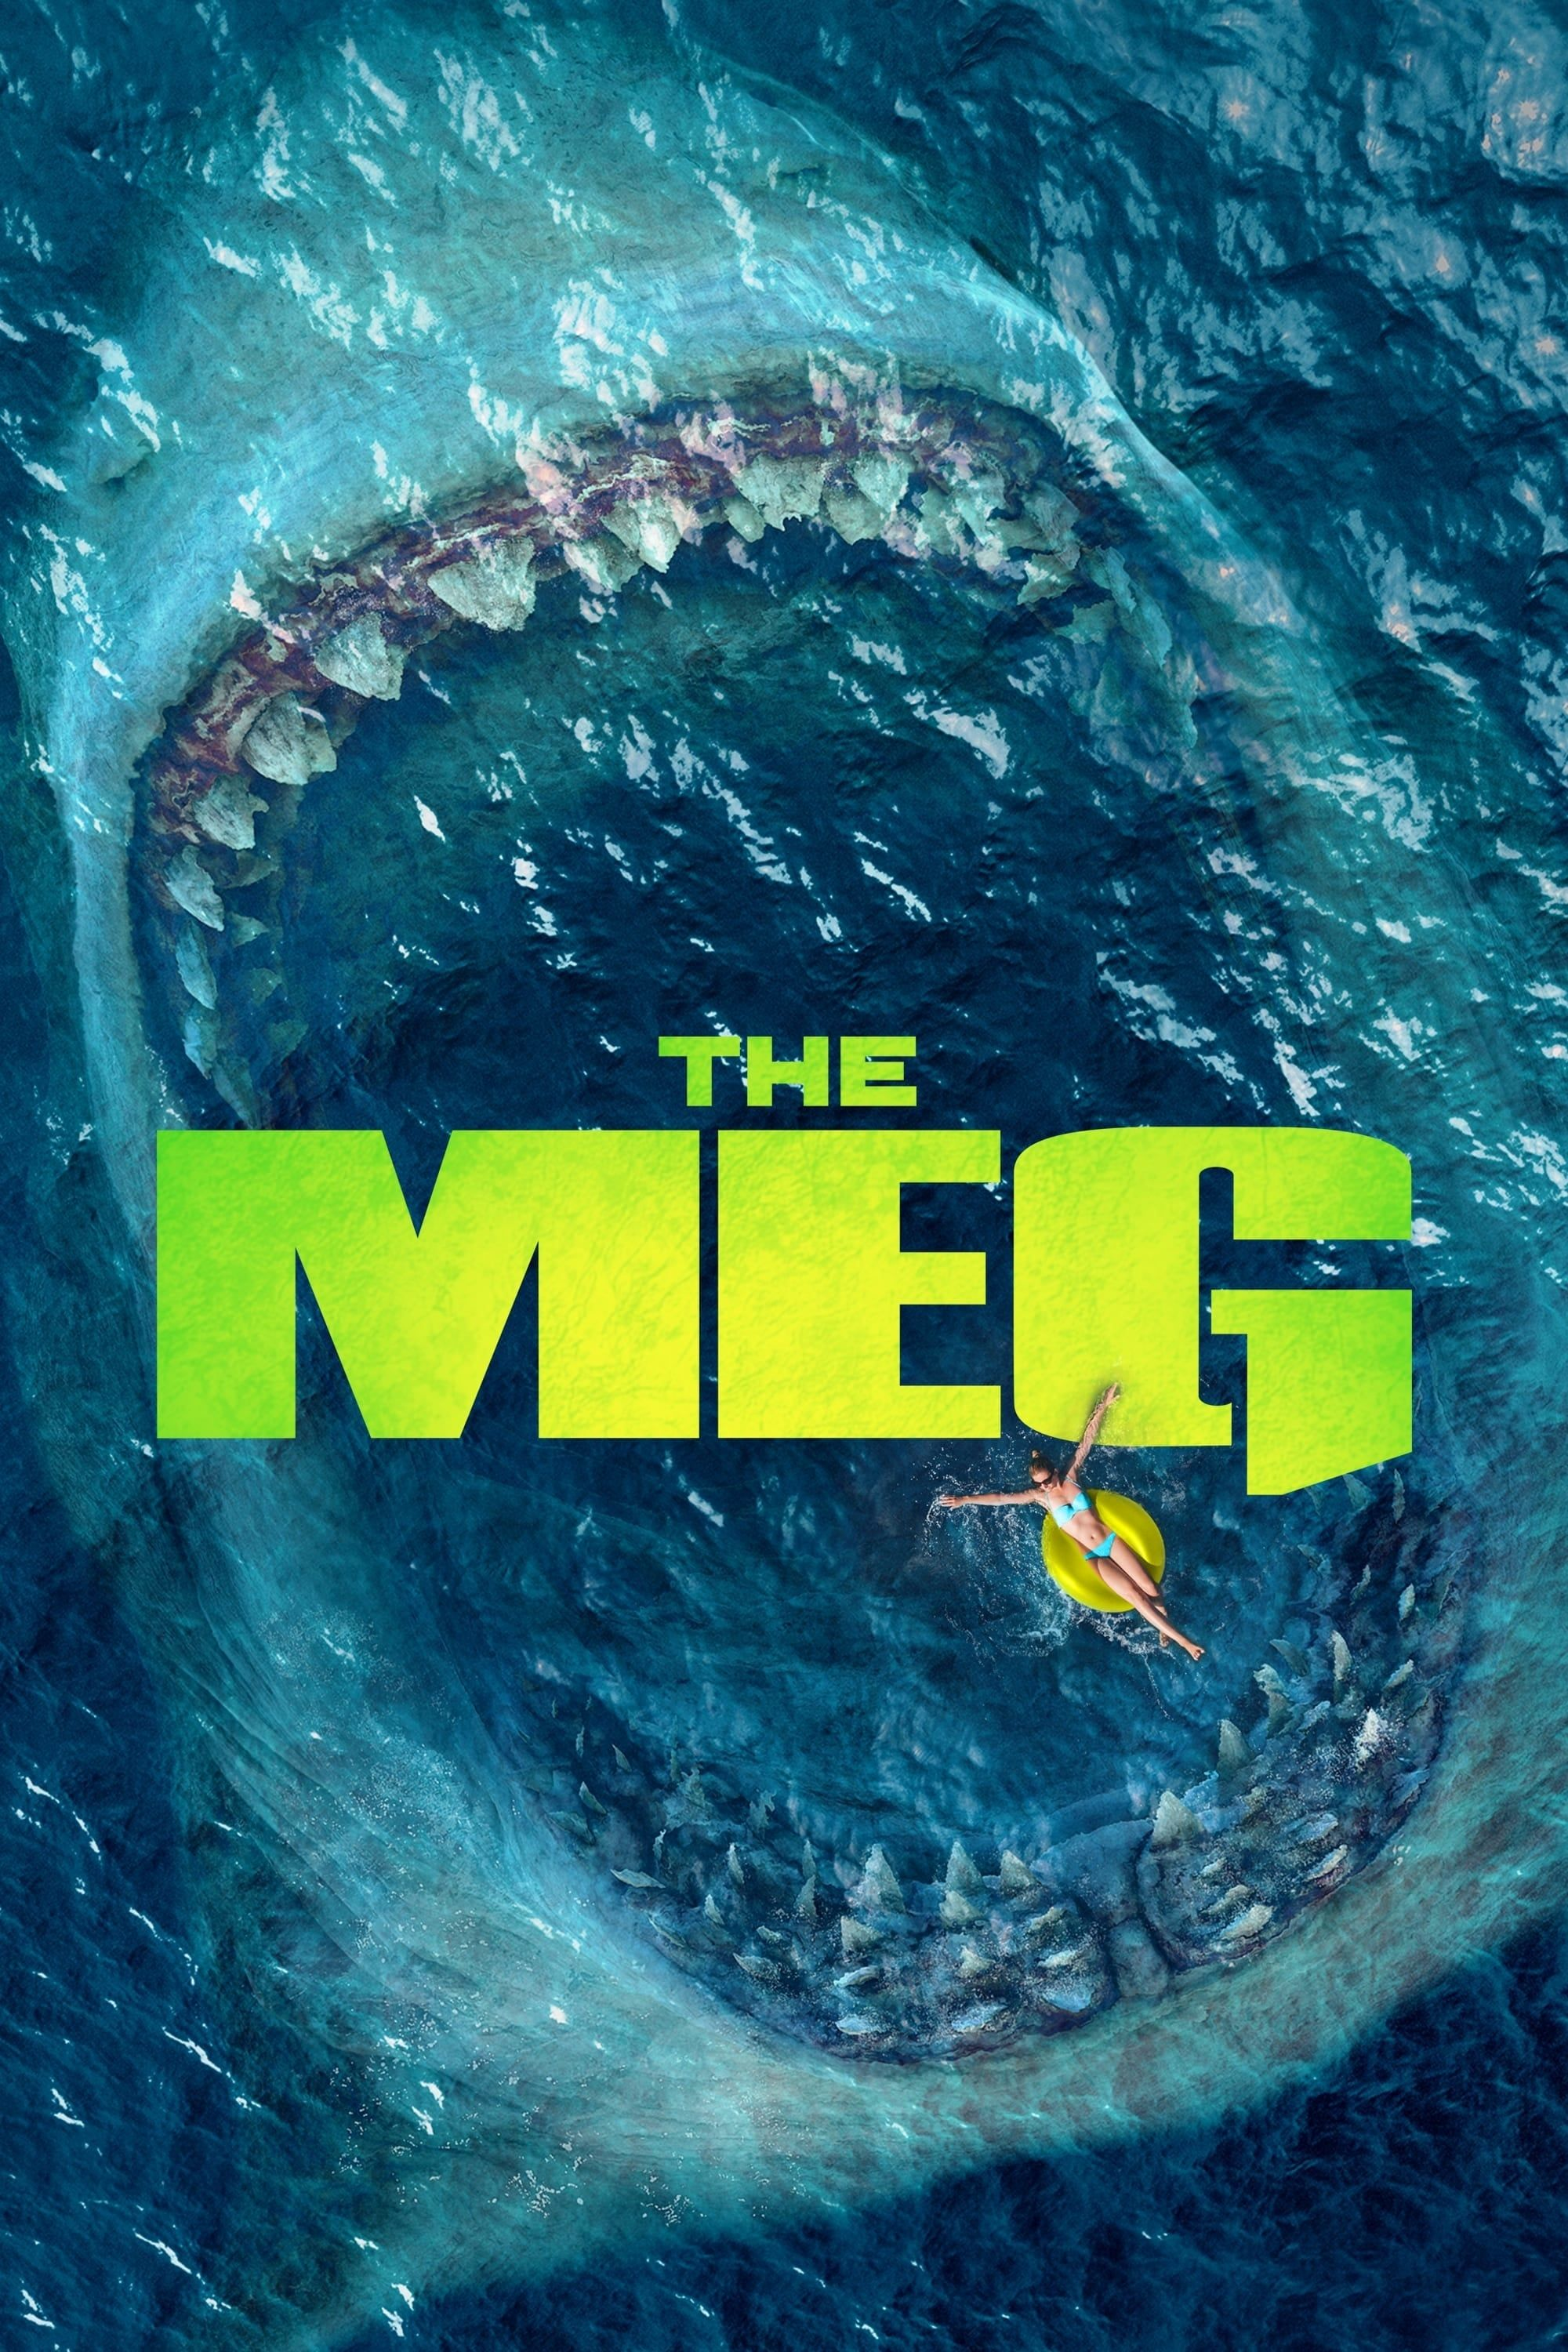 Download Film The Meg Lk21 - LayarKaca21.com